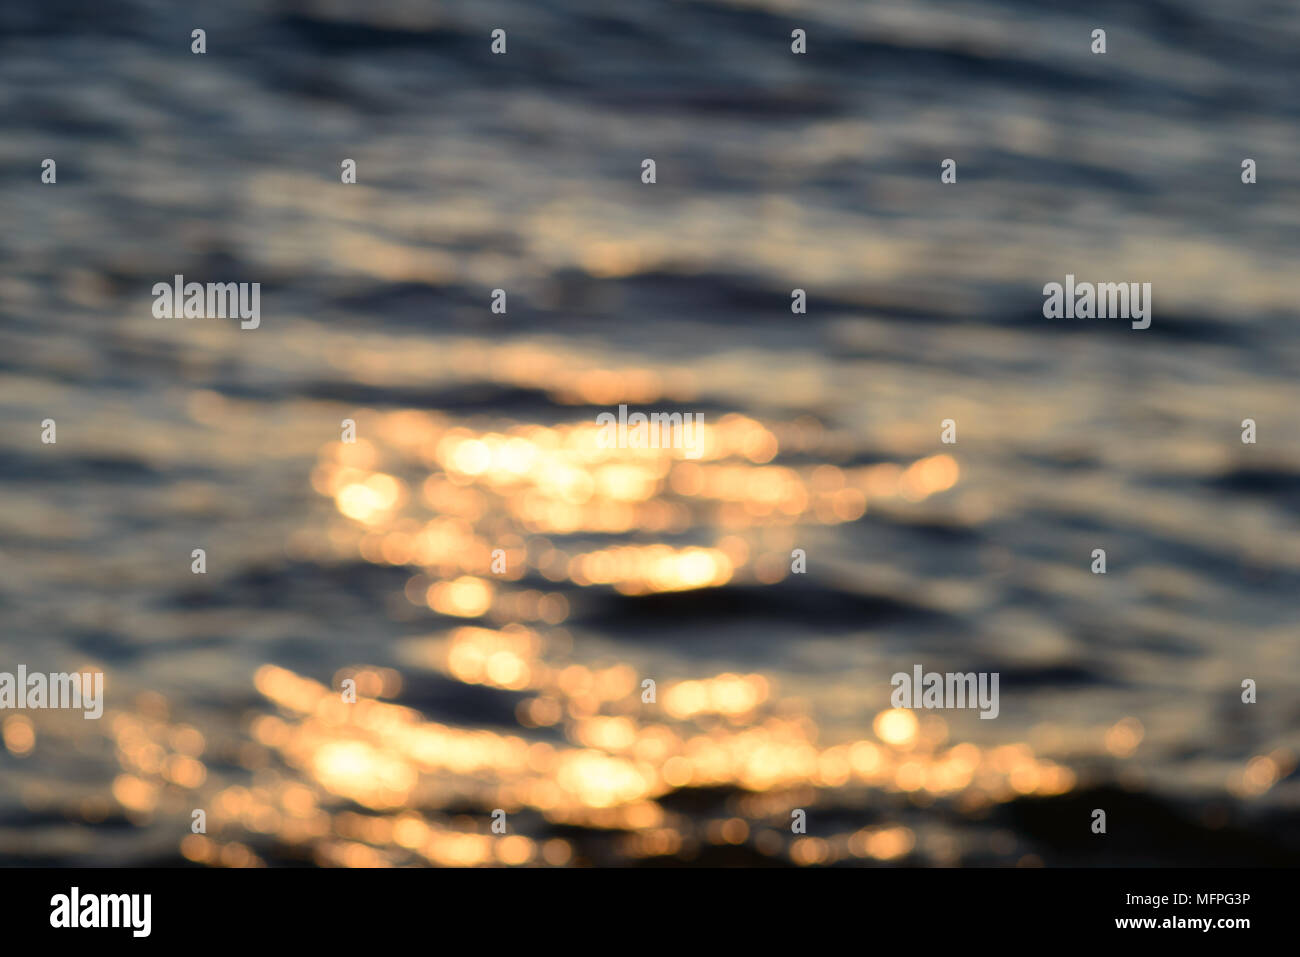 Blurred sea water in the evening light background - Stock Image